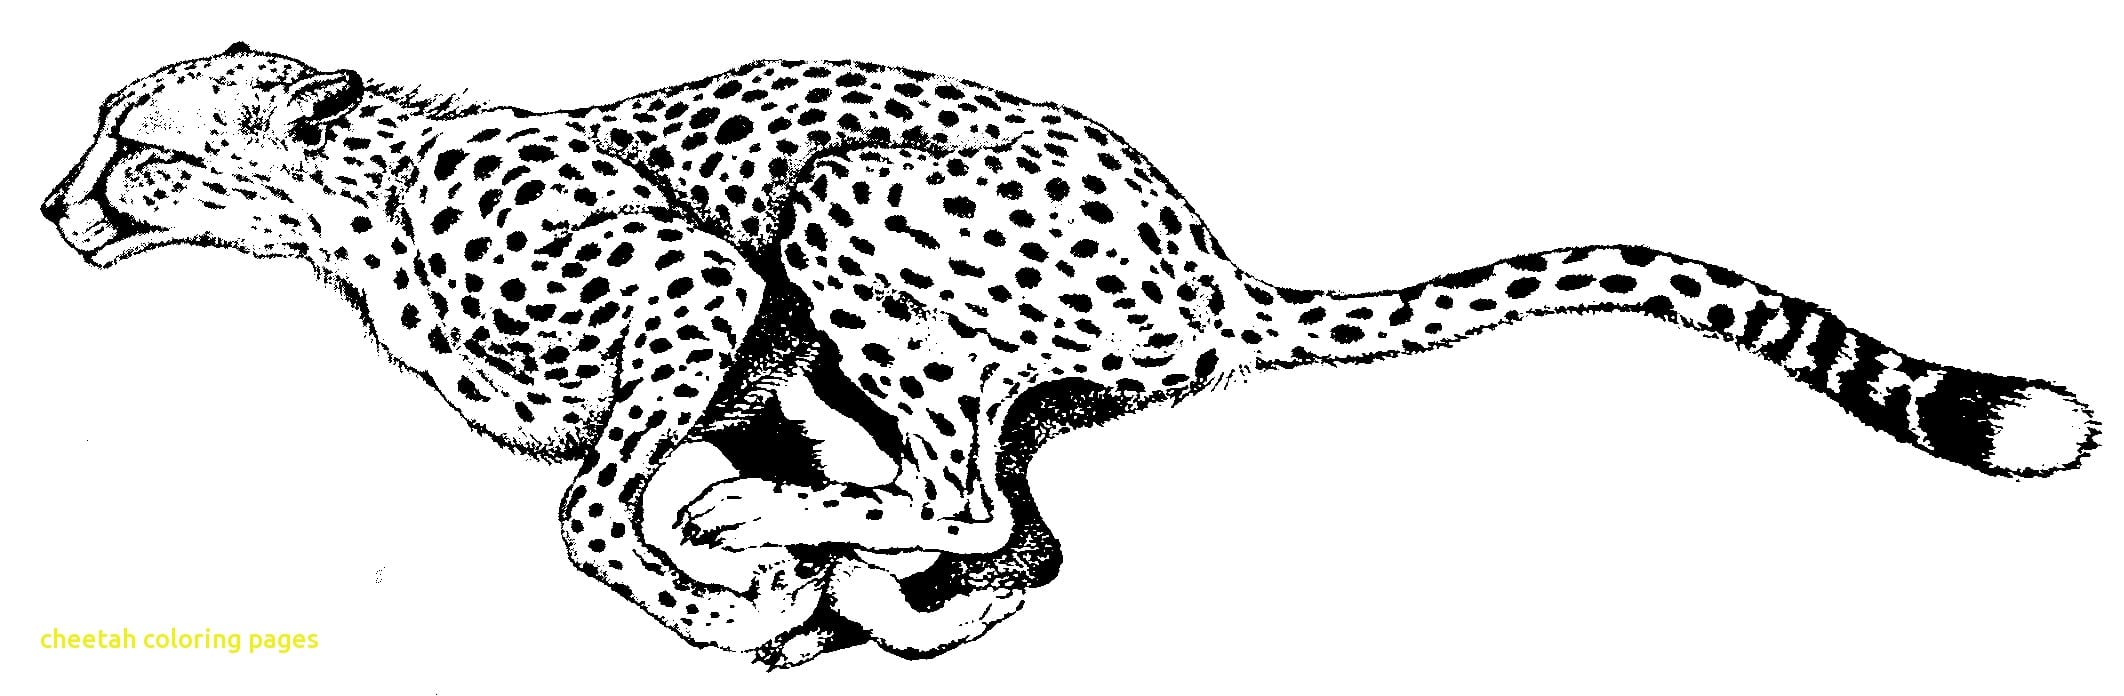 Winning Cheetah Coloring Page Printable In Tiny Color New To